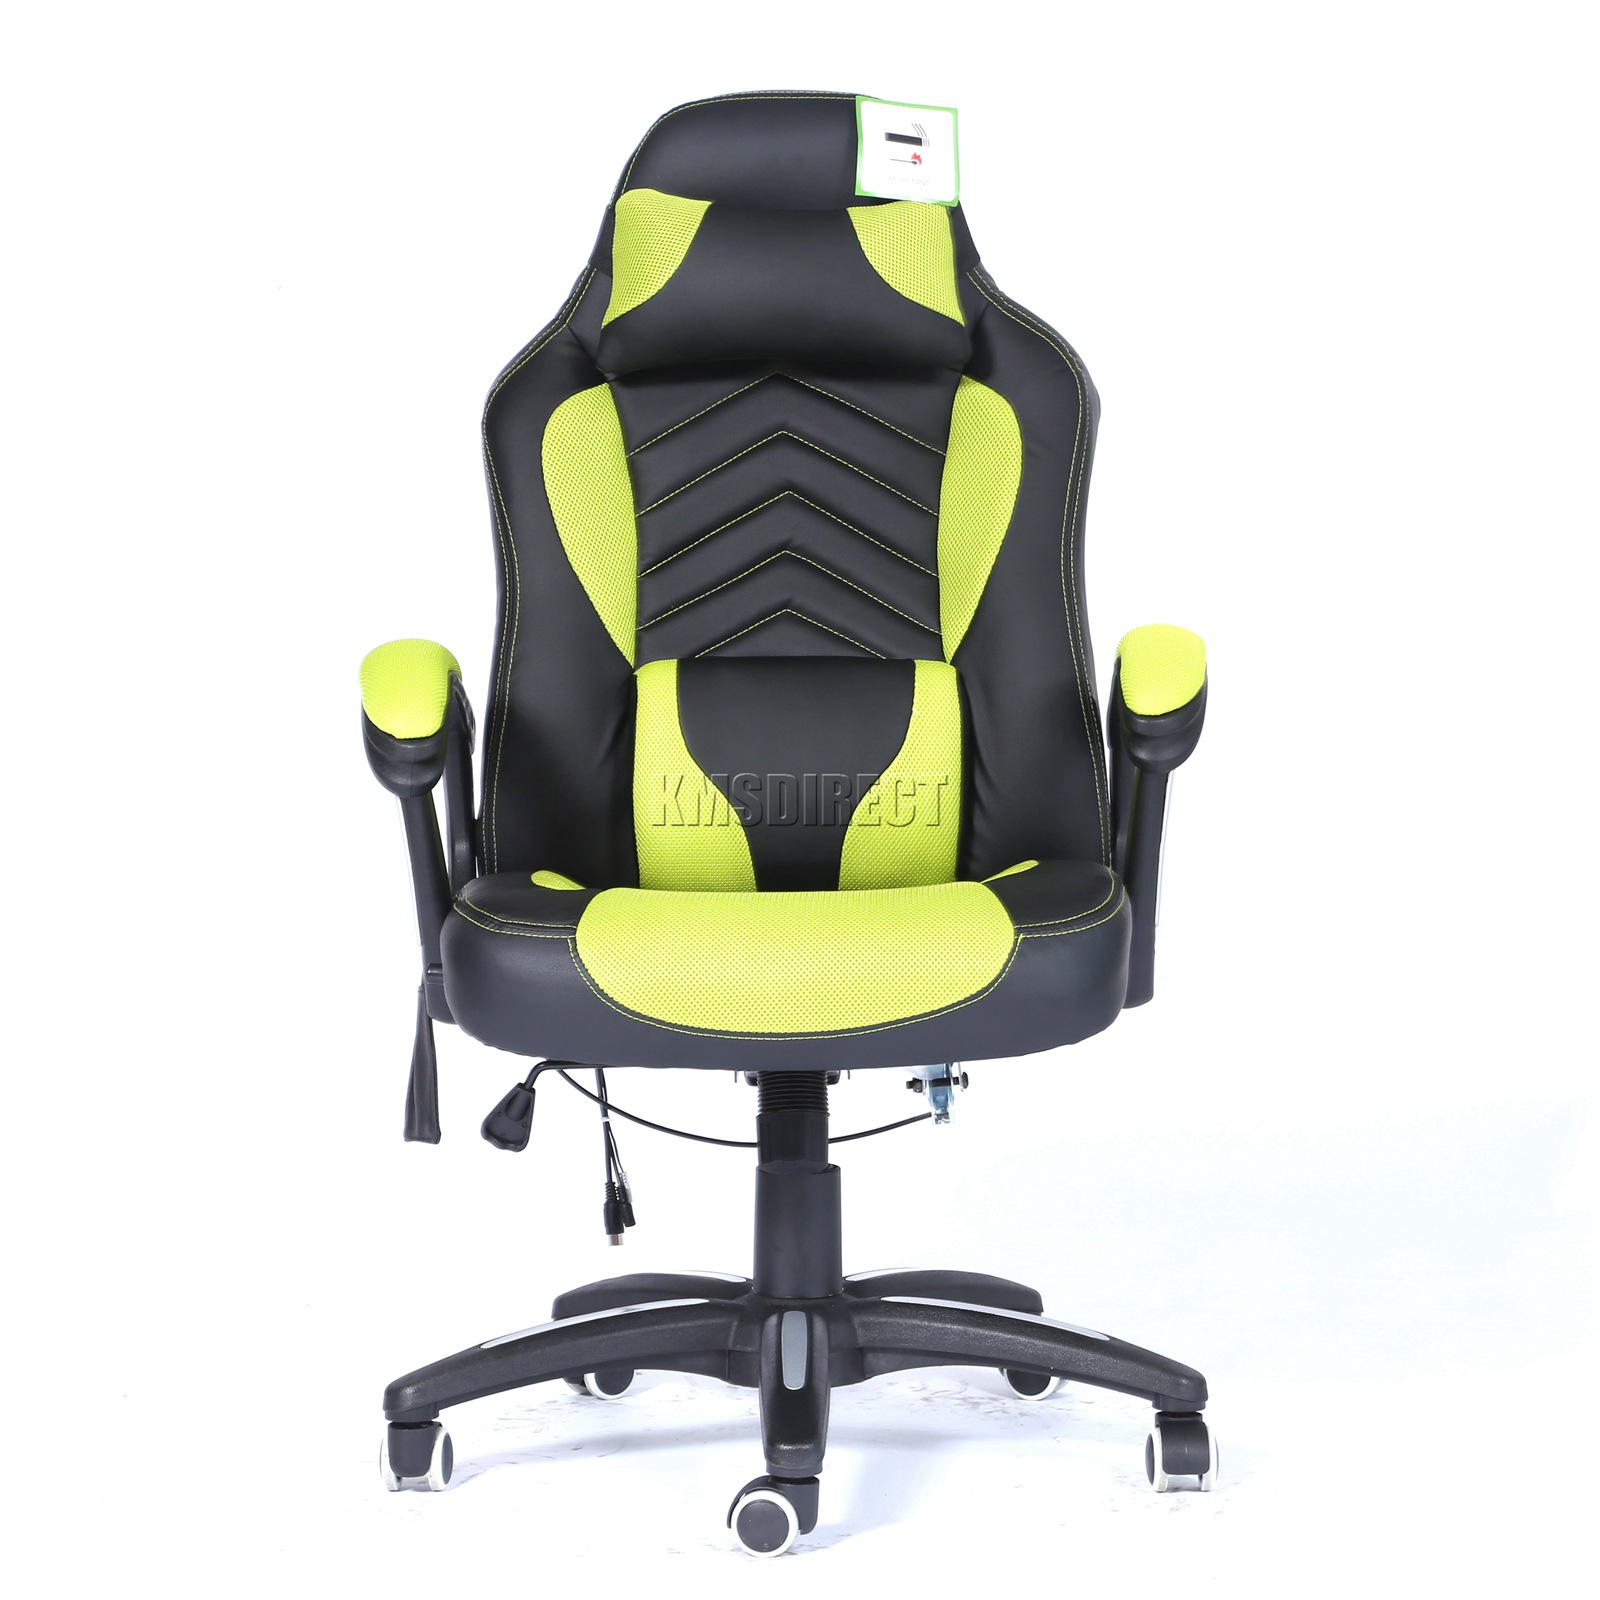 WestWood-Heated-Massage-Office-Chair-Gaming-amp-Computer-Recliner-Swivel-MC09 thumbnail 20